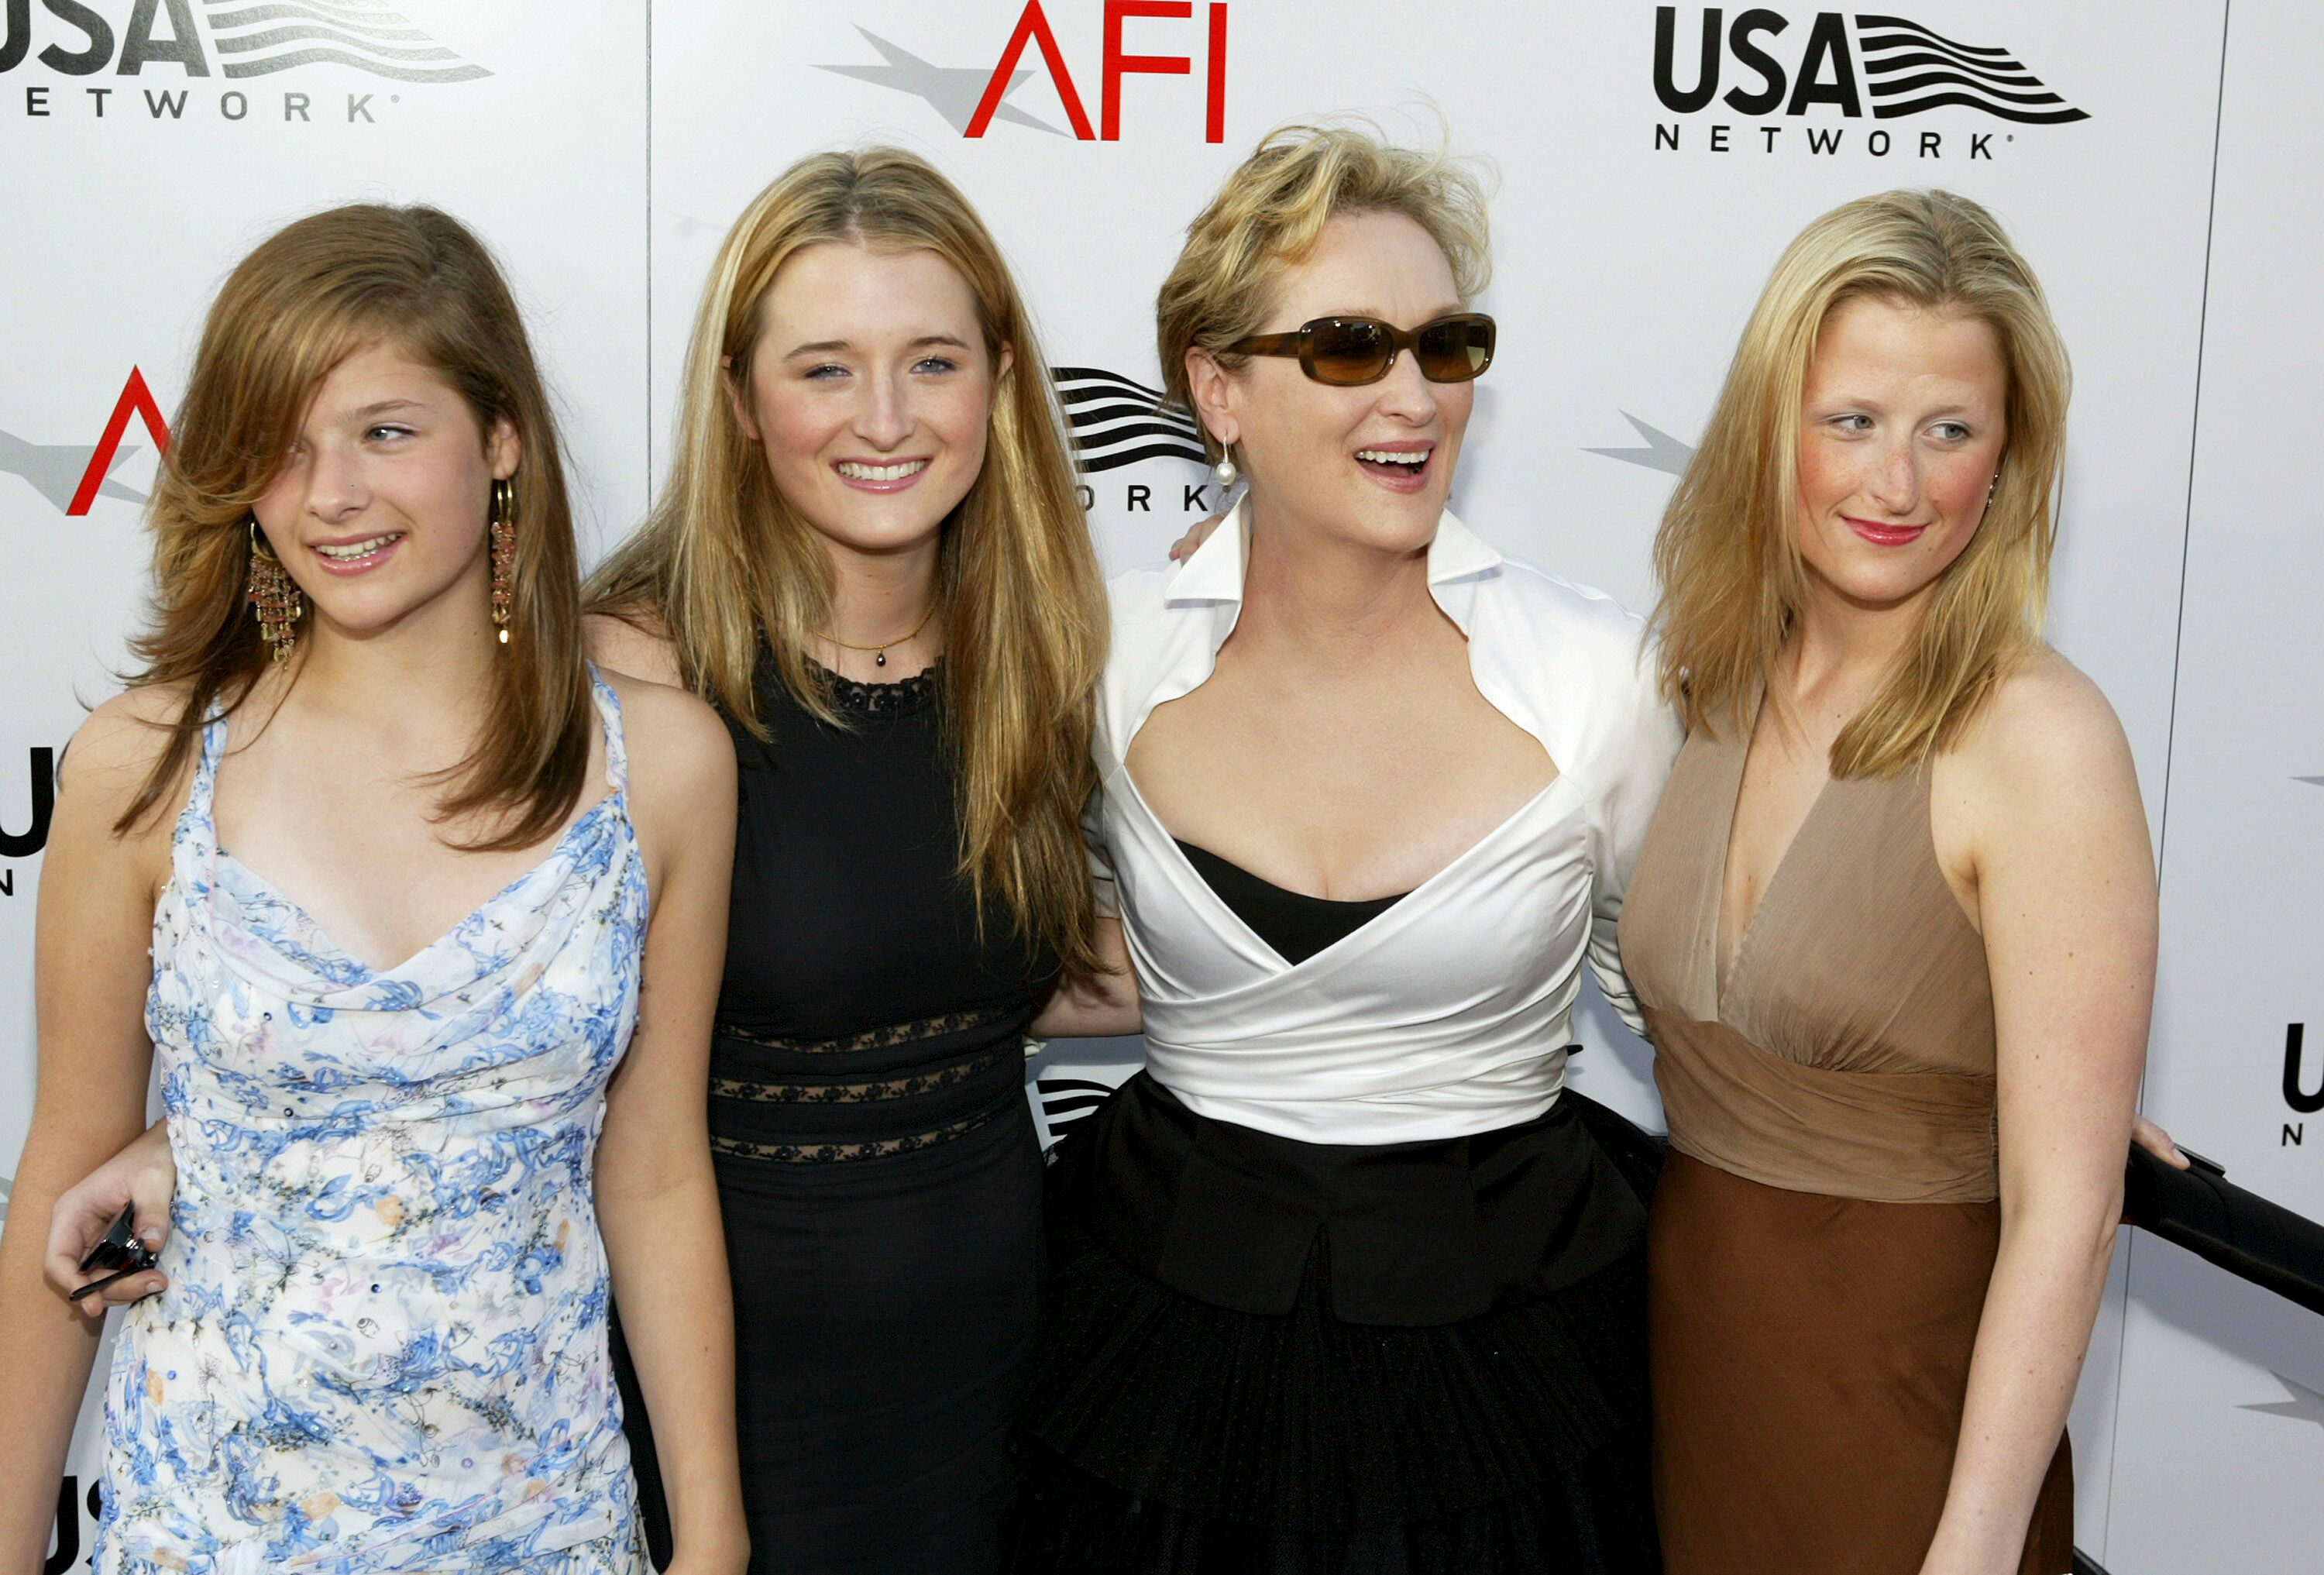 Meryl Streep and her daughters attend the 32nd Annual AFI Life Achievement Award: A Tribute to Meryl Streep. | Source: Getty Images